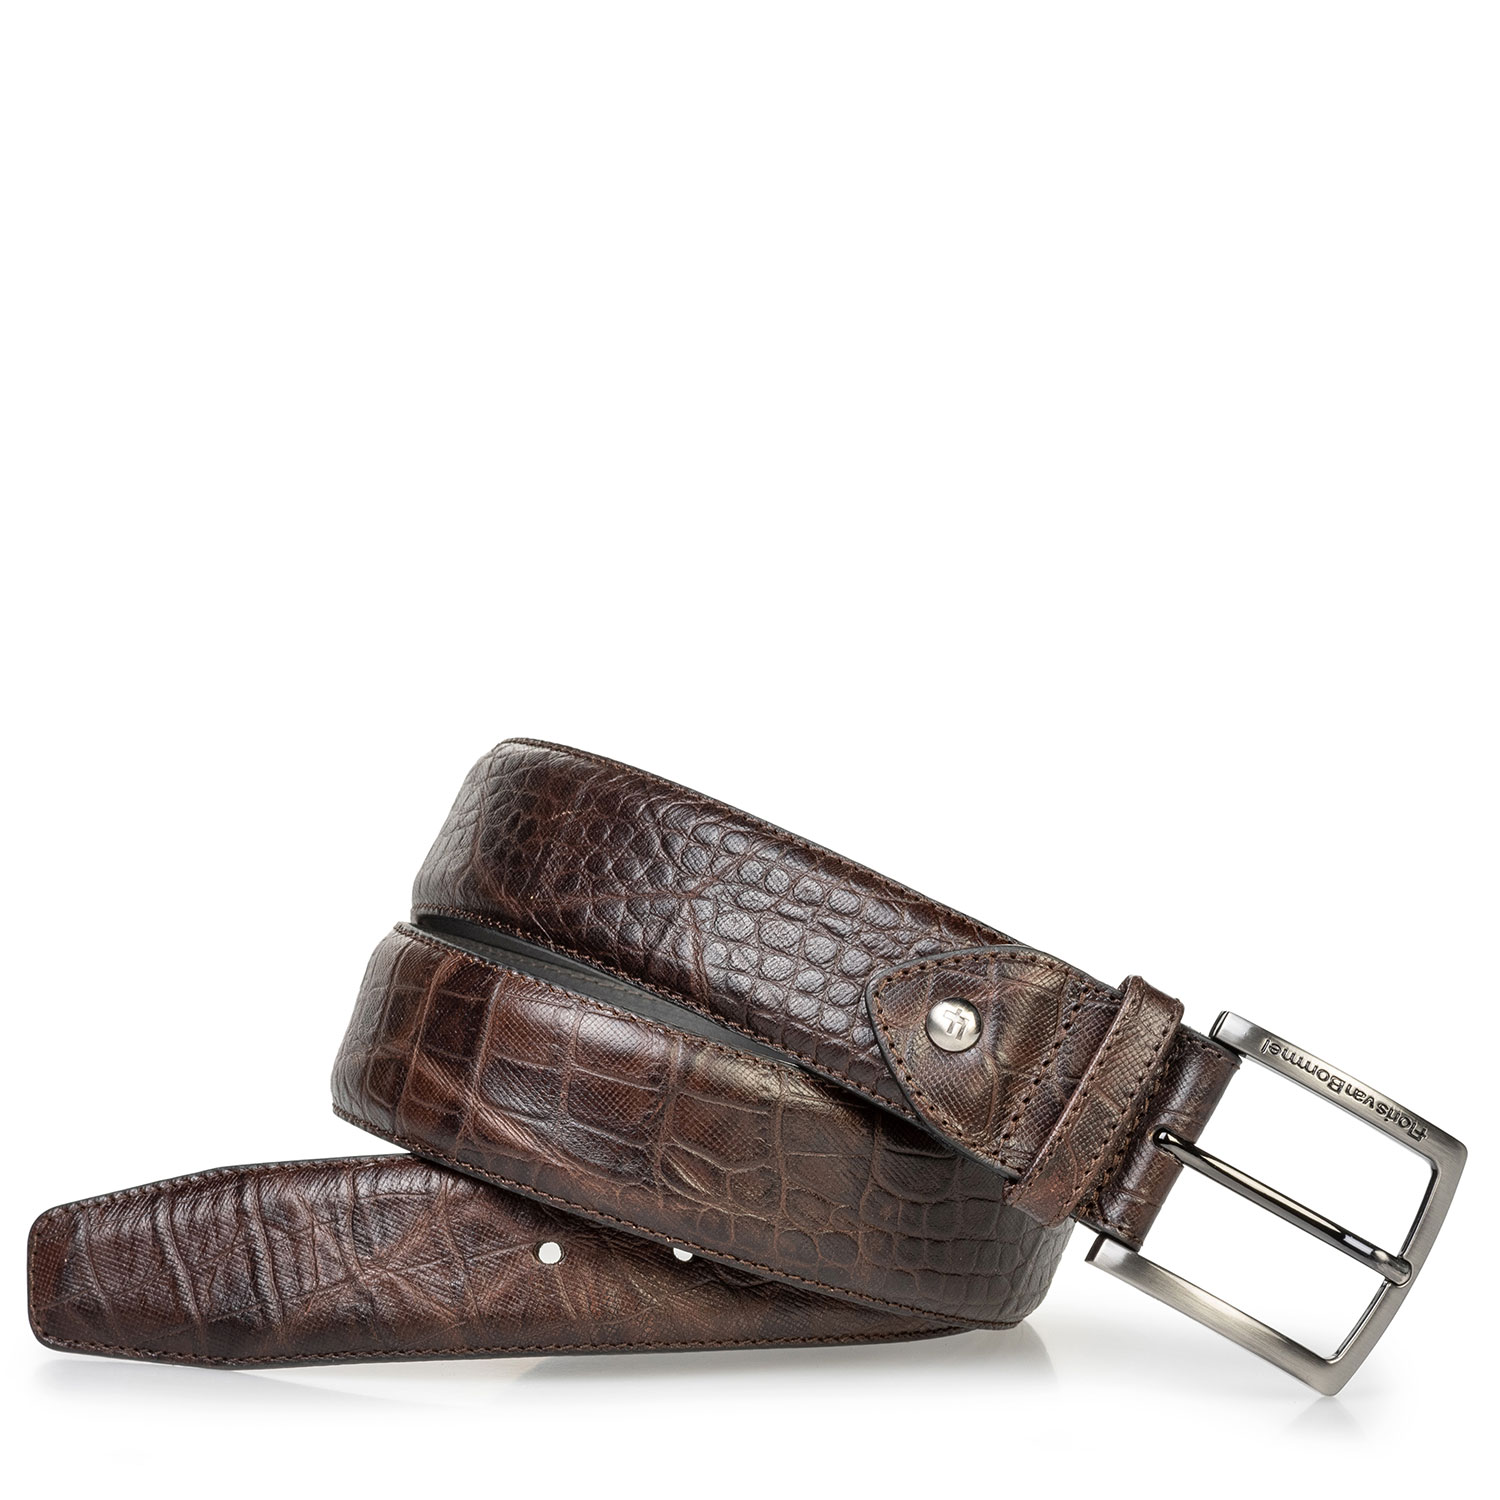 75202/66 - Leather belt croco print brown